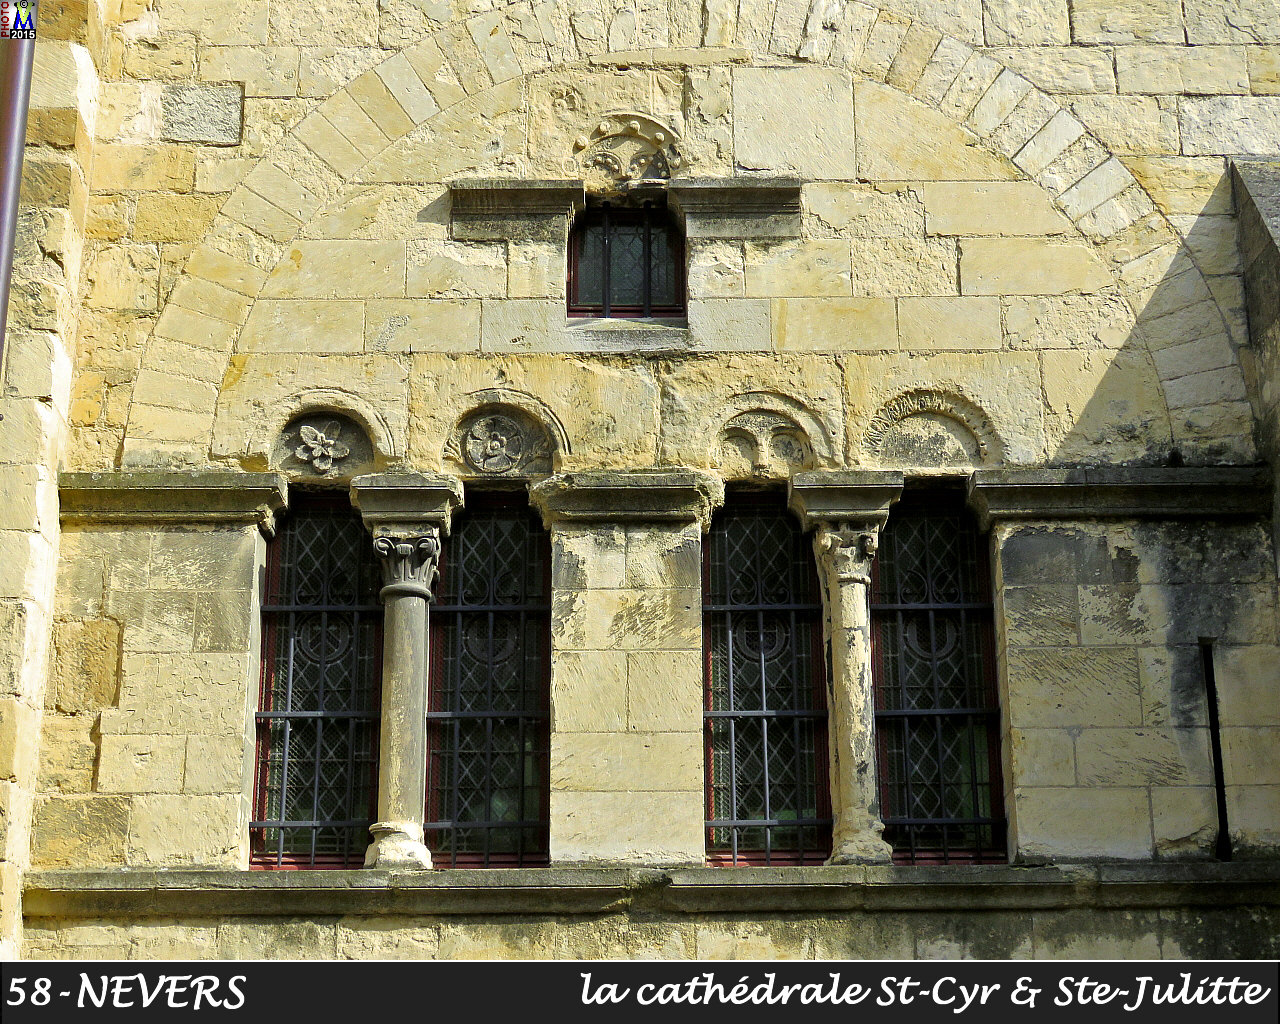 58NEVERS-cathedrale_110.jpg